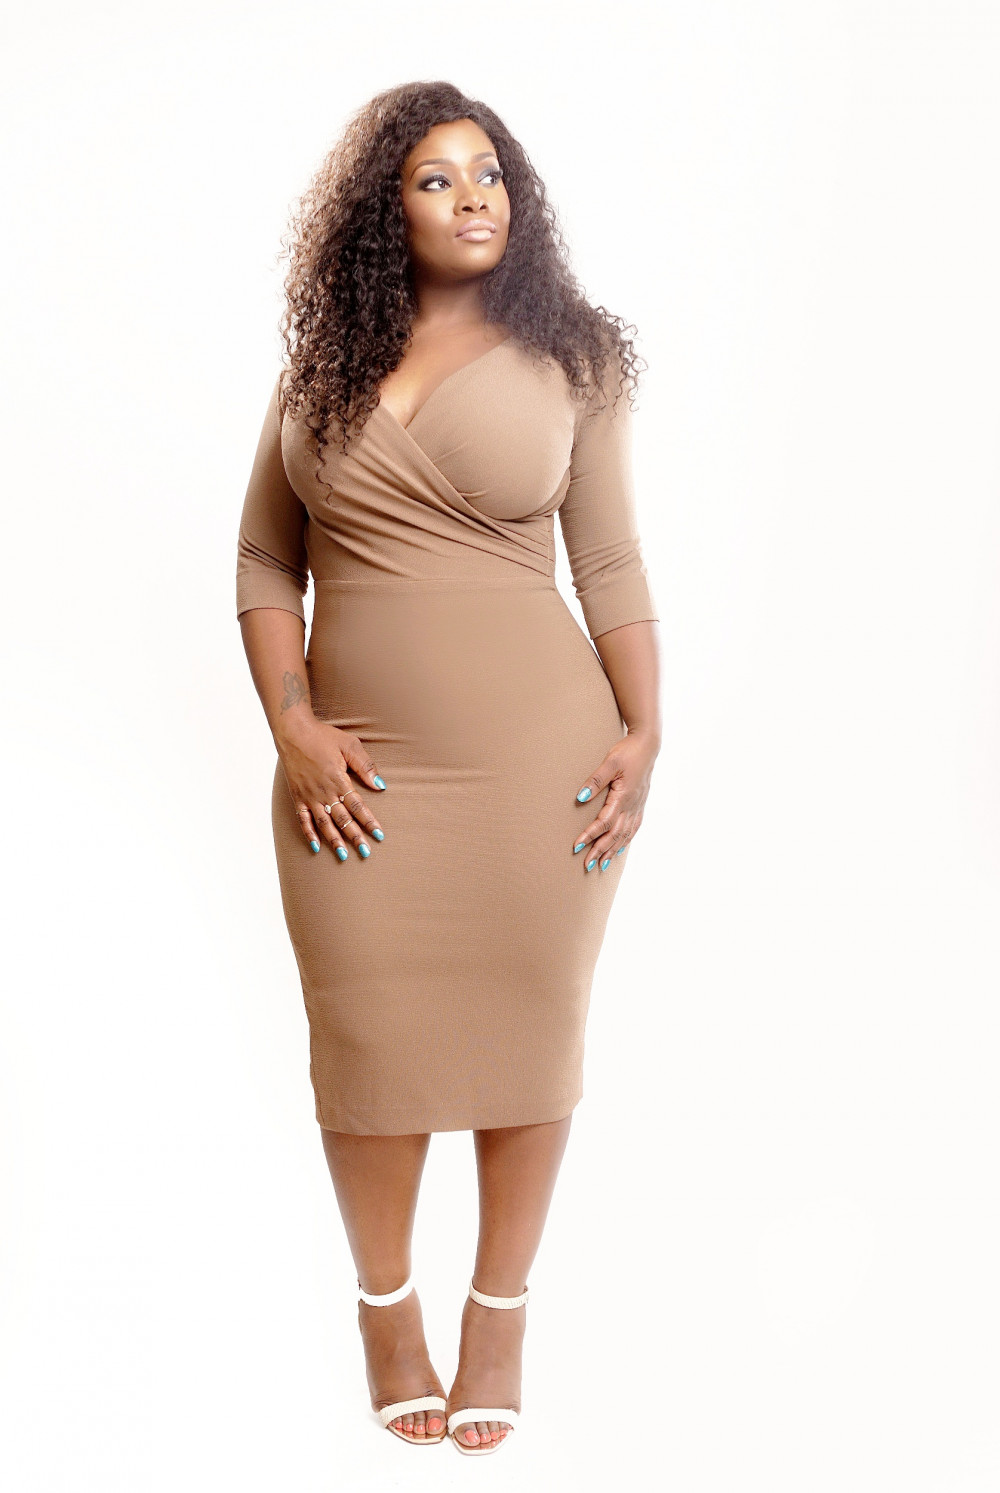 Toolz-Promo-Photos-October-2015-BellaNaija0013